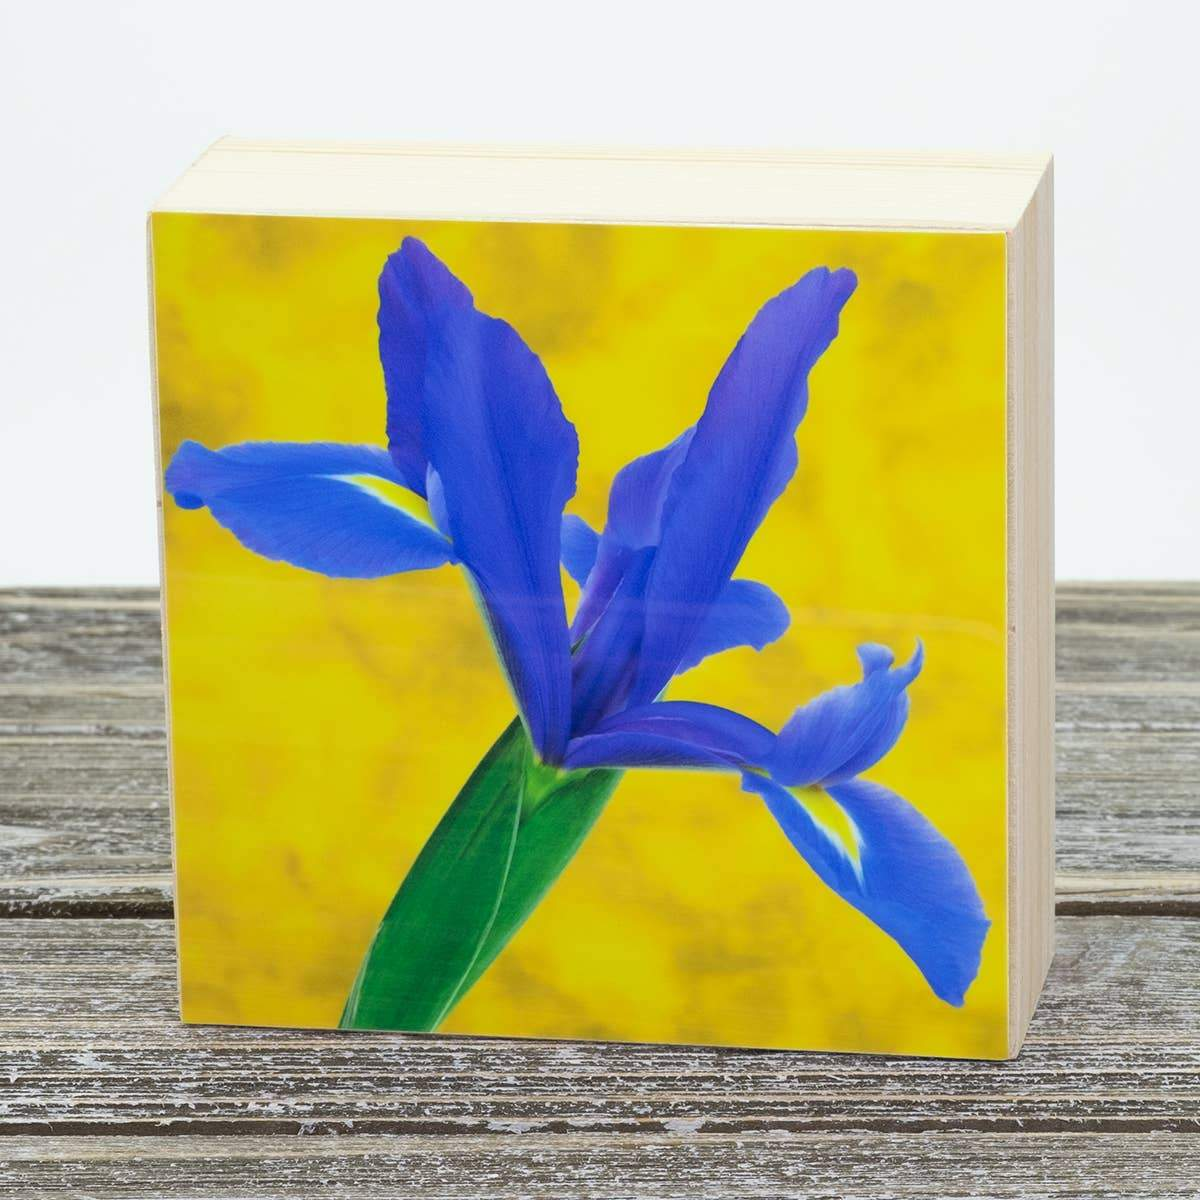 Iris Aluminum Photo on Wood Block art print ANVIL metals studio